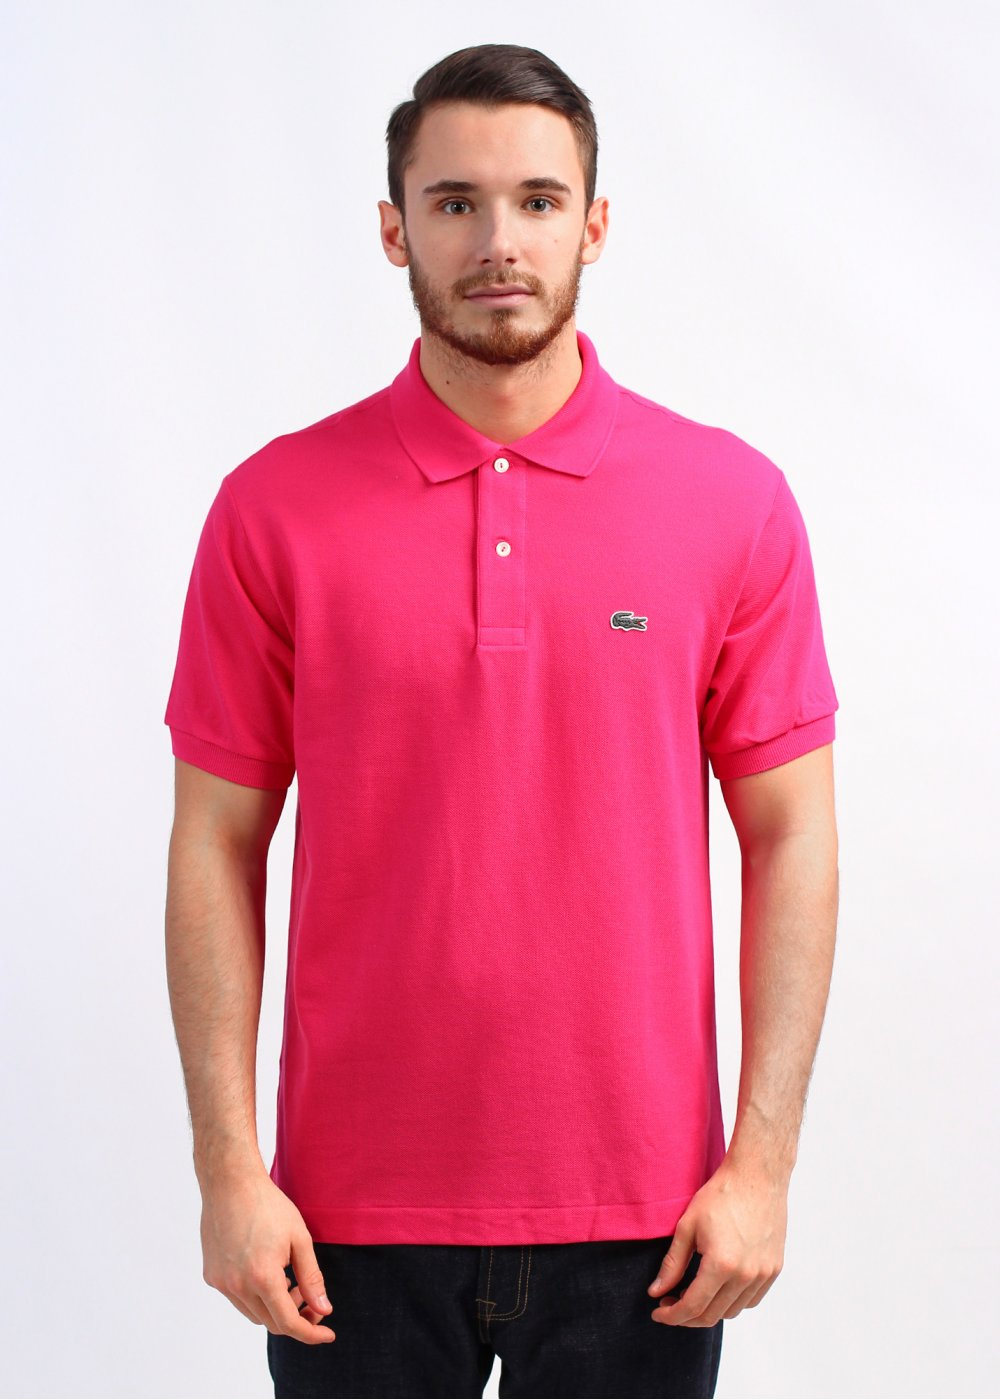 Lacoste Best Polo Shirt - Bright Pink